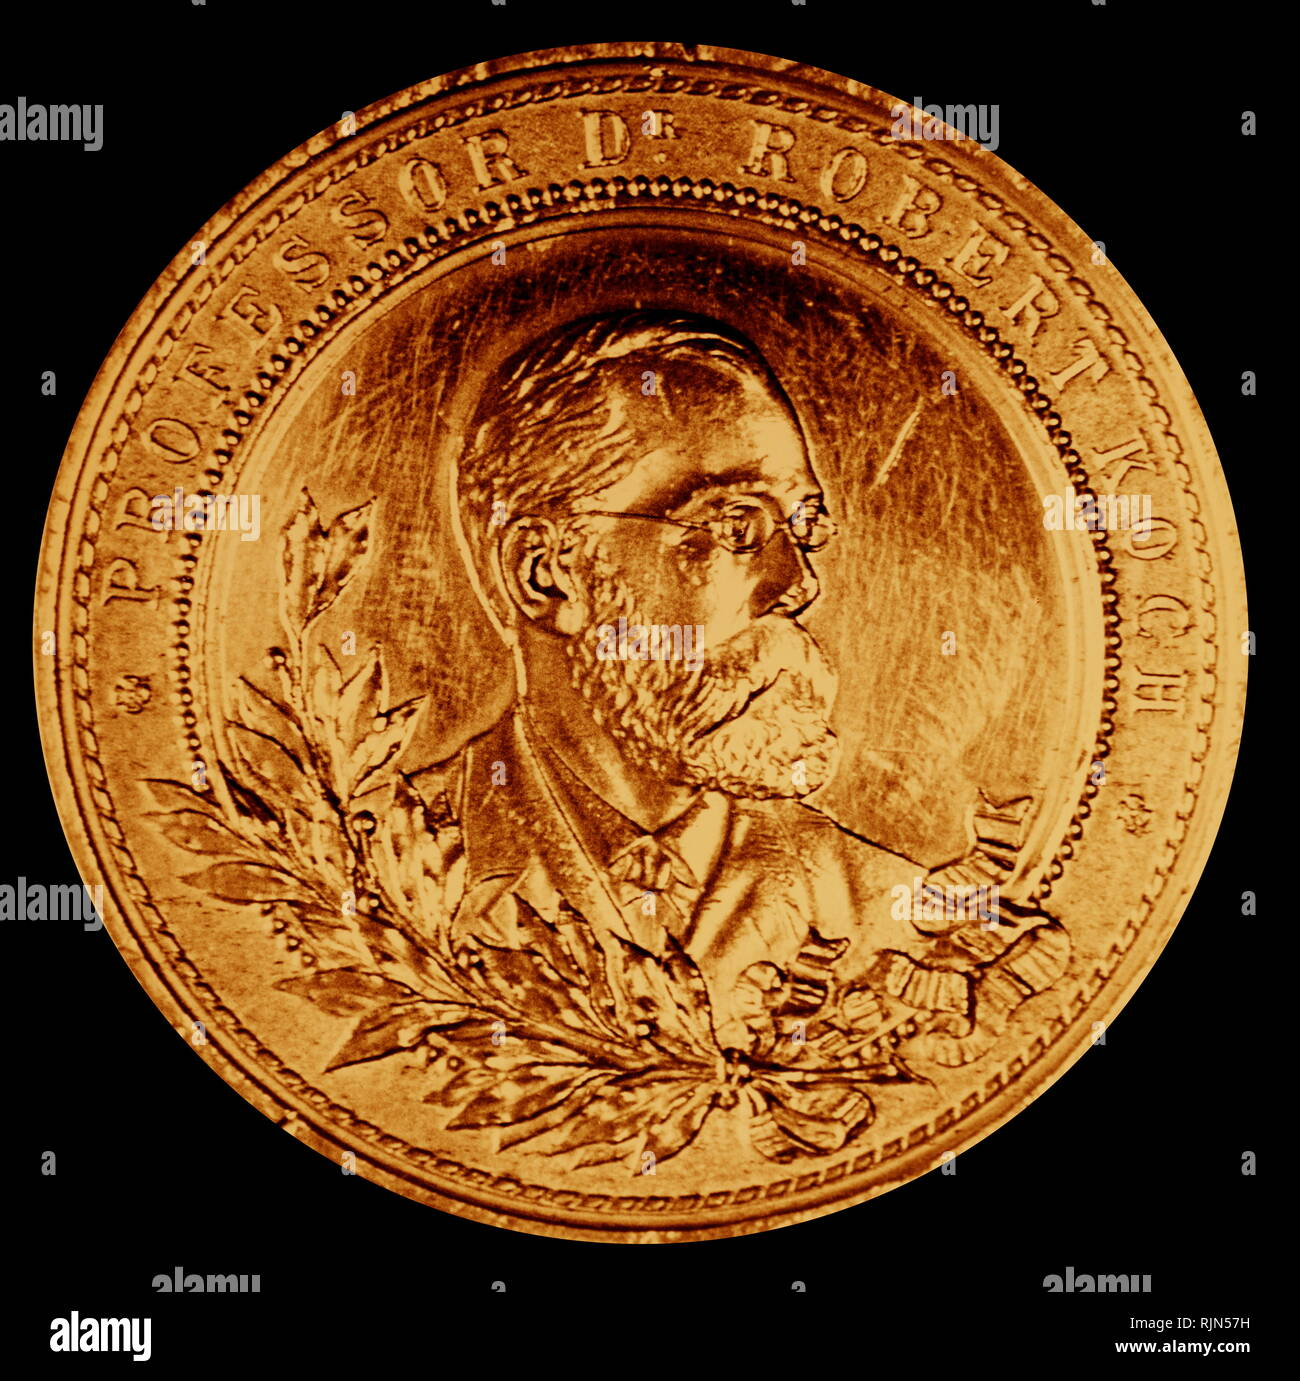 medal showing Robert Koch (1843 - 1910); German physician and microbiologist. As the founder of modern bacteriology, he identified the specific causative agents of tuberculosis, cholera, and anthrax and gave experimental support for the concept of infectious disease - Stock Image